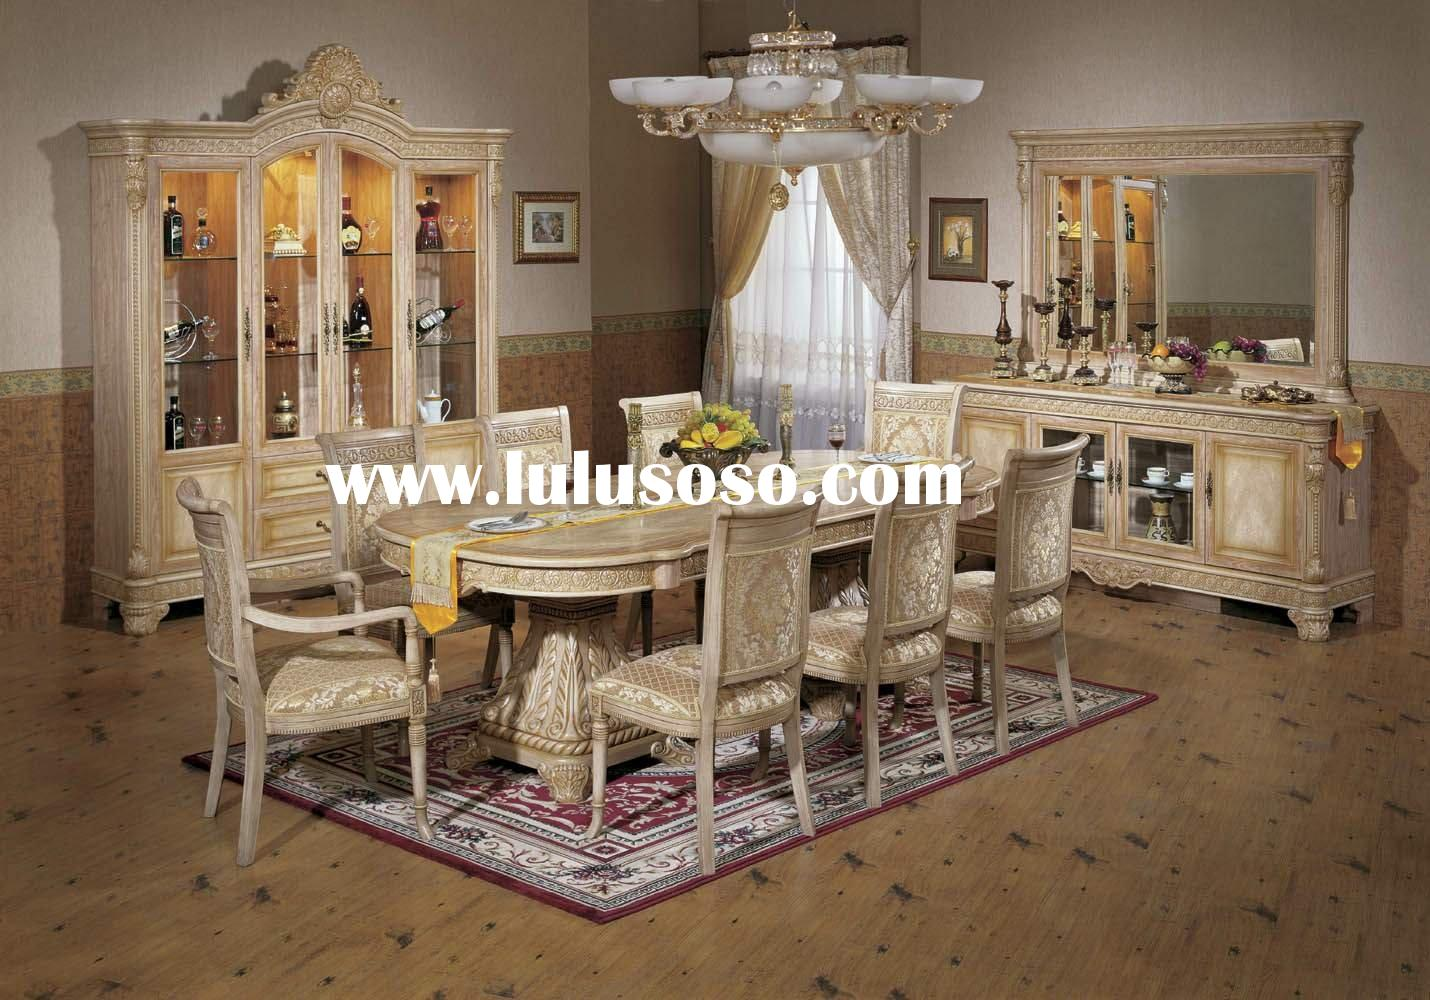 Home Furniture FG-8510C Dining Room Furniture dining set dining table chair cellaret buffet